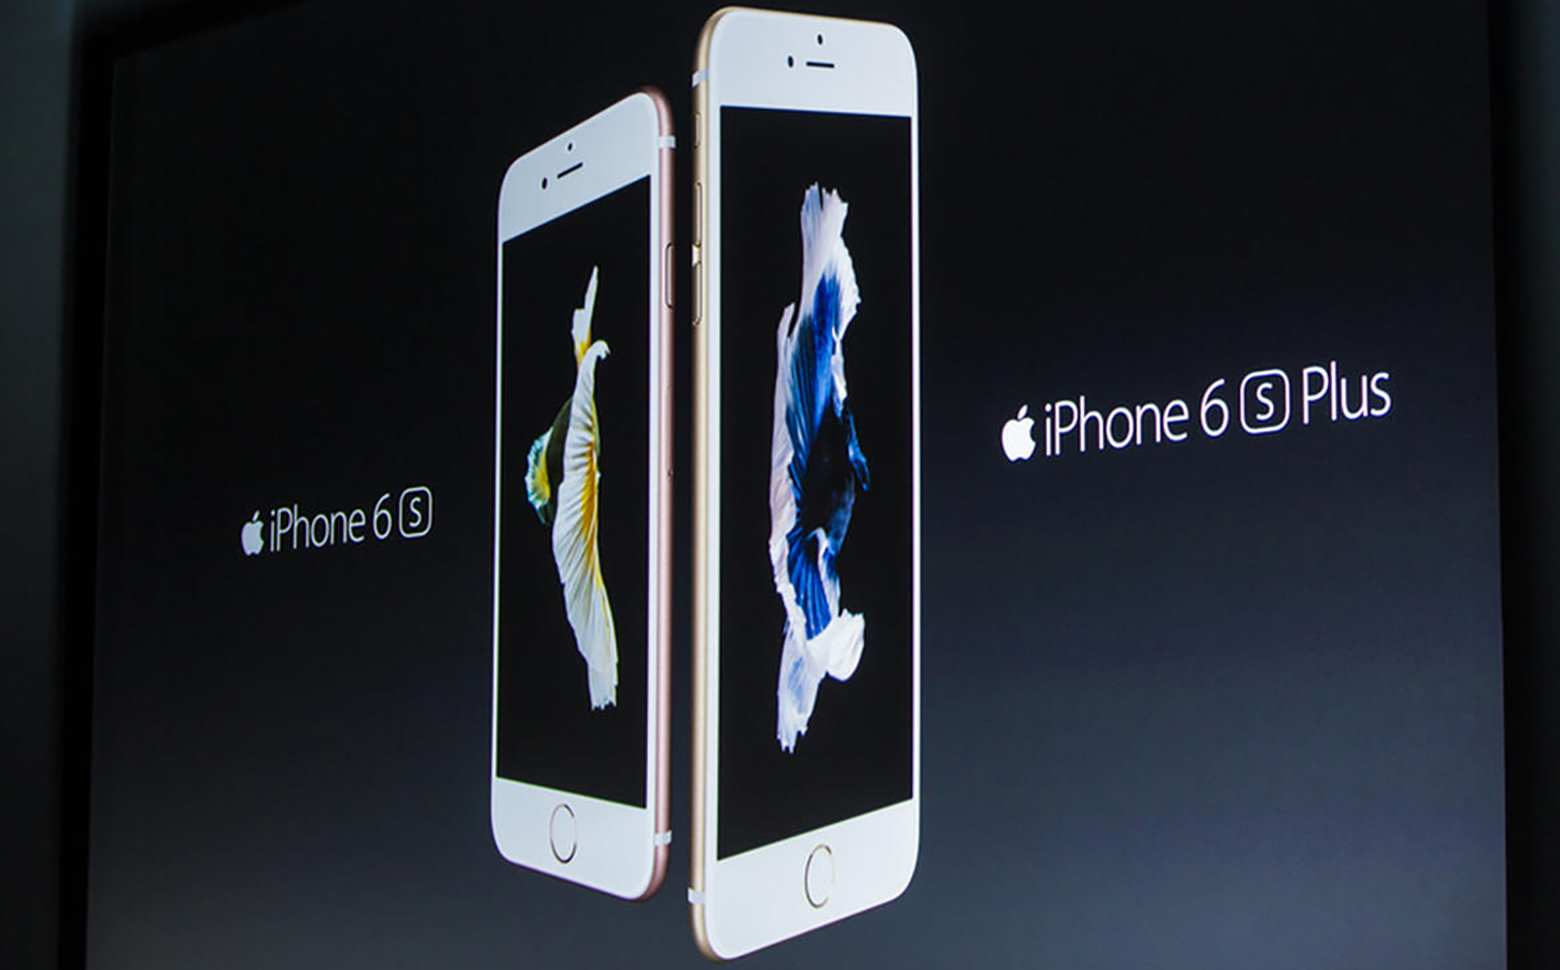 iphone-6s-iphone-6s-plus